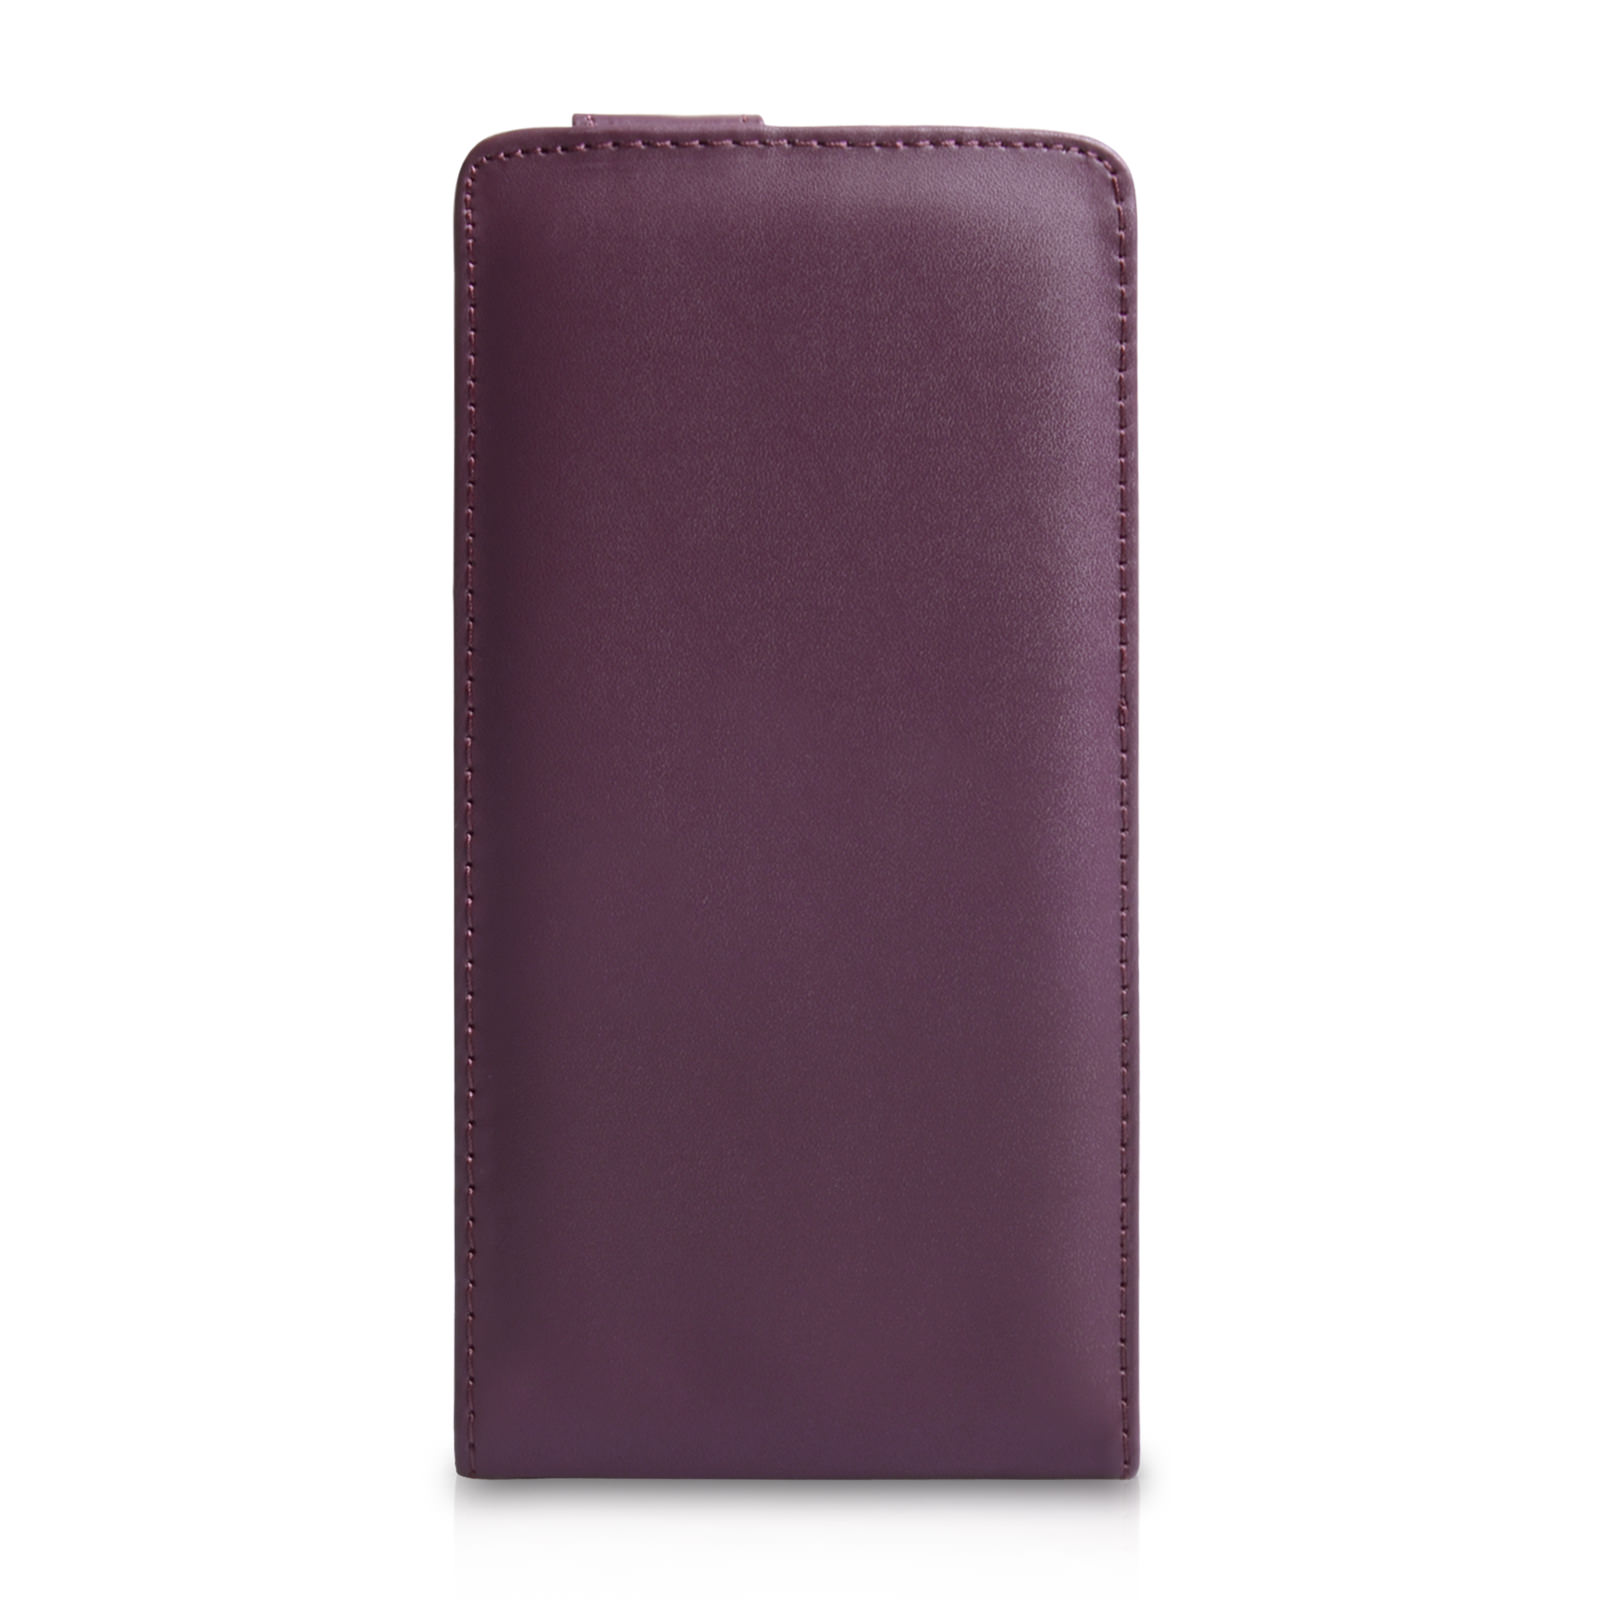 YouSave Sony Xperia Z Ultra Leather Effect Flip Case - Purple